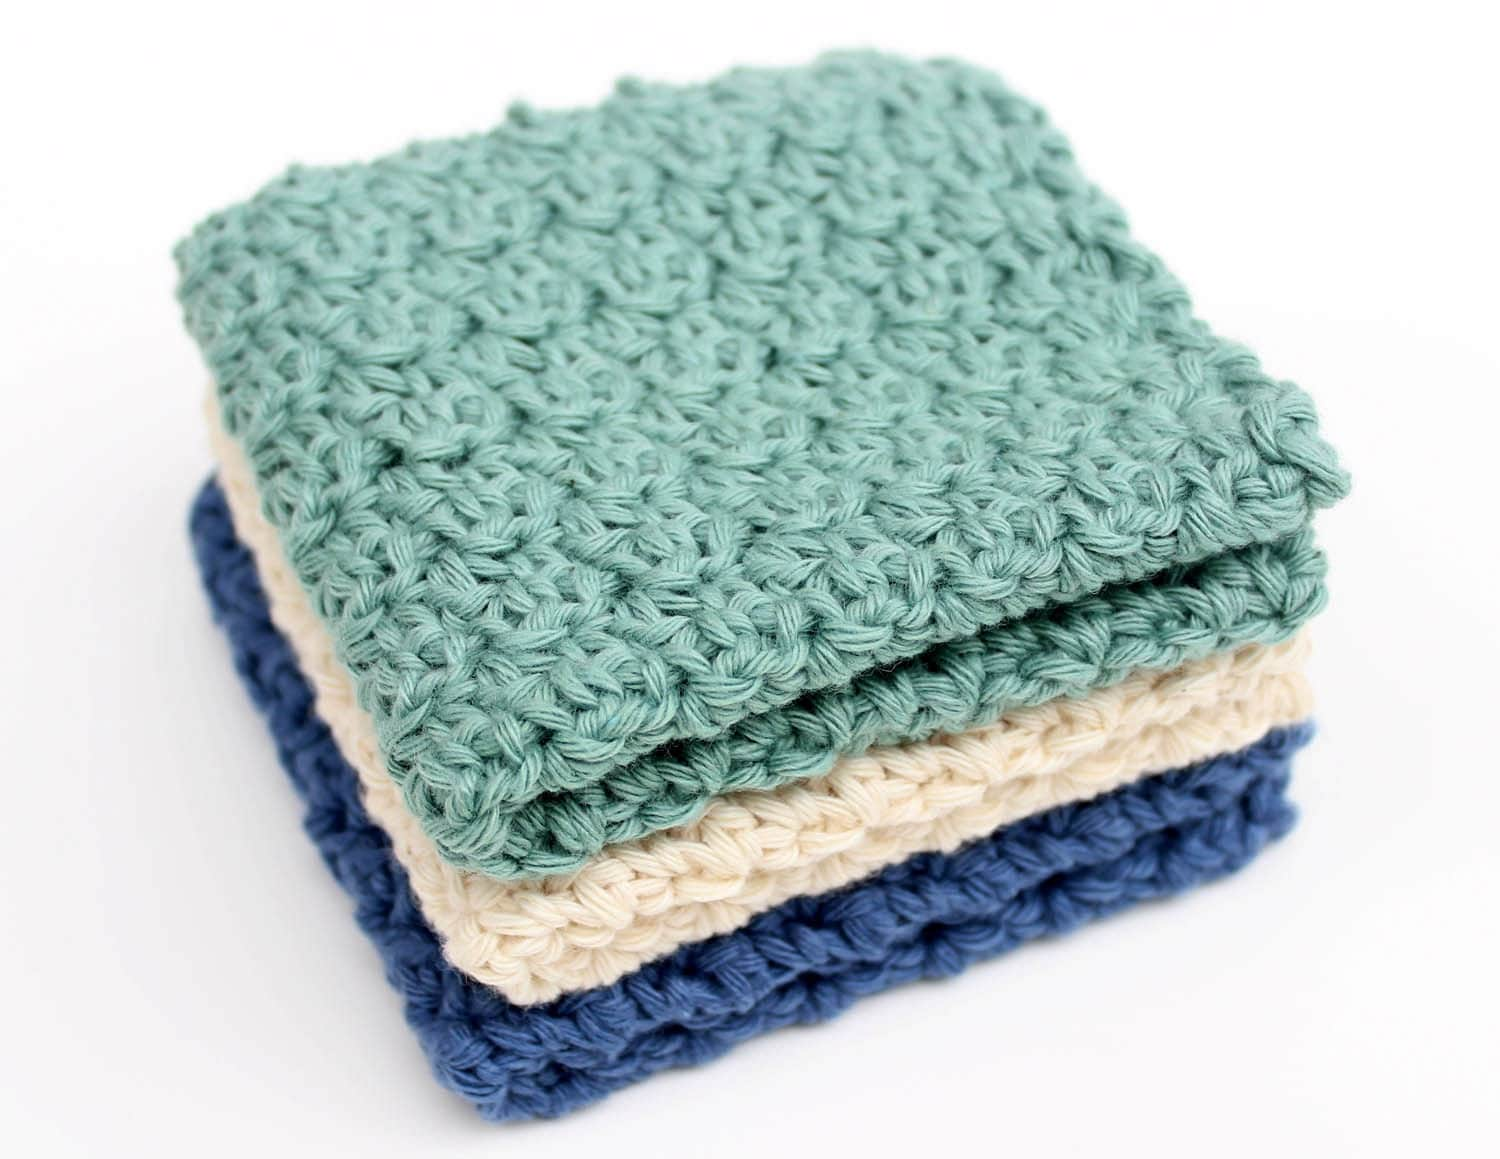 Crochet Washcloth Pattern : Crochet Pattern Washcloth - Do it yourself - Instant Download PDF